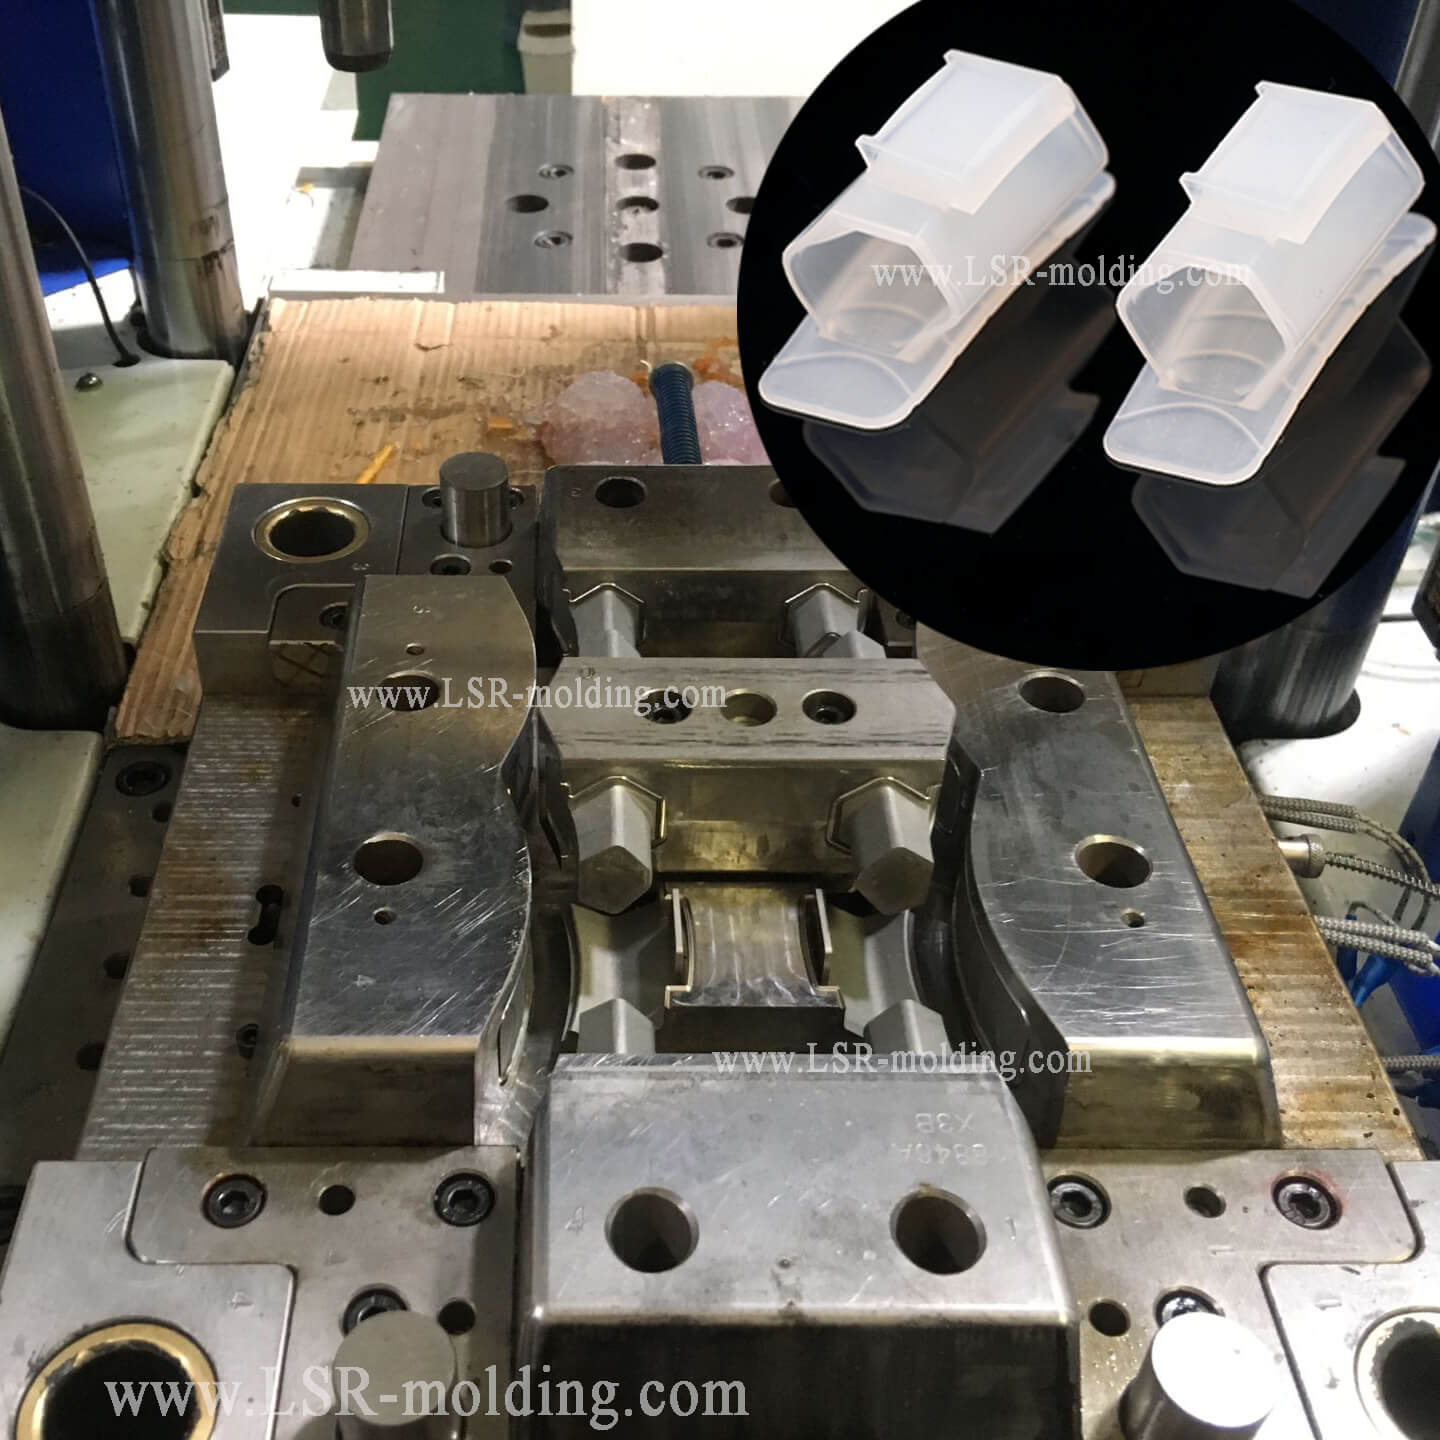 Liquid Silicon Rubber Injection Molding